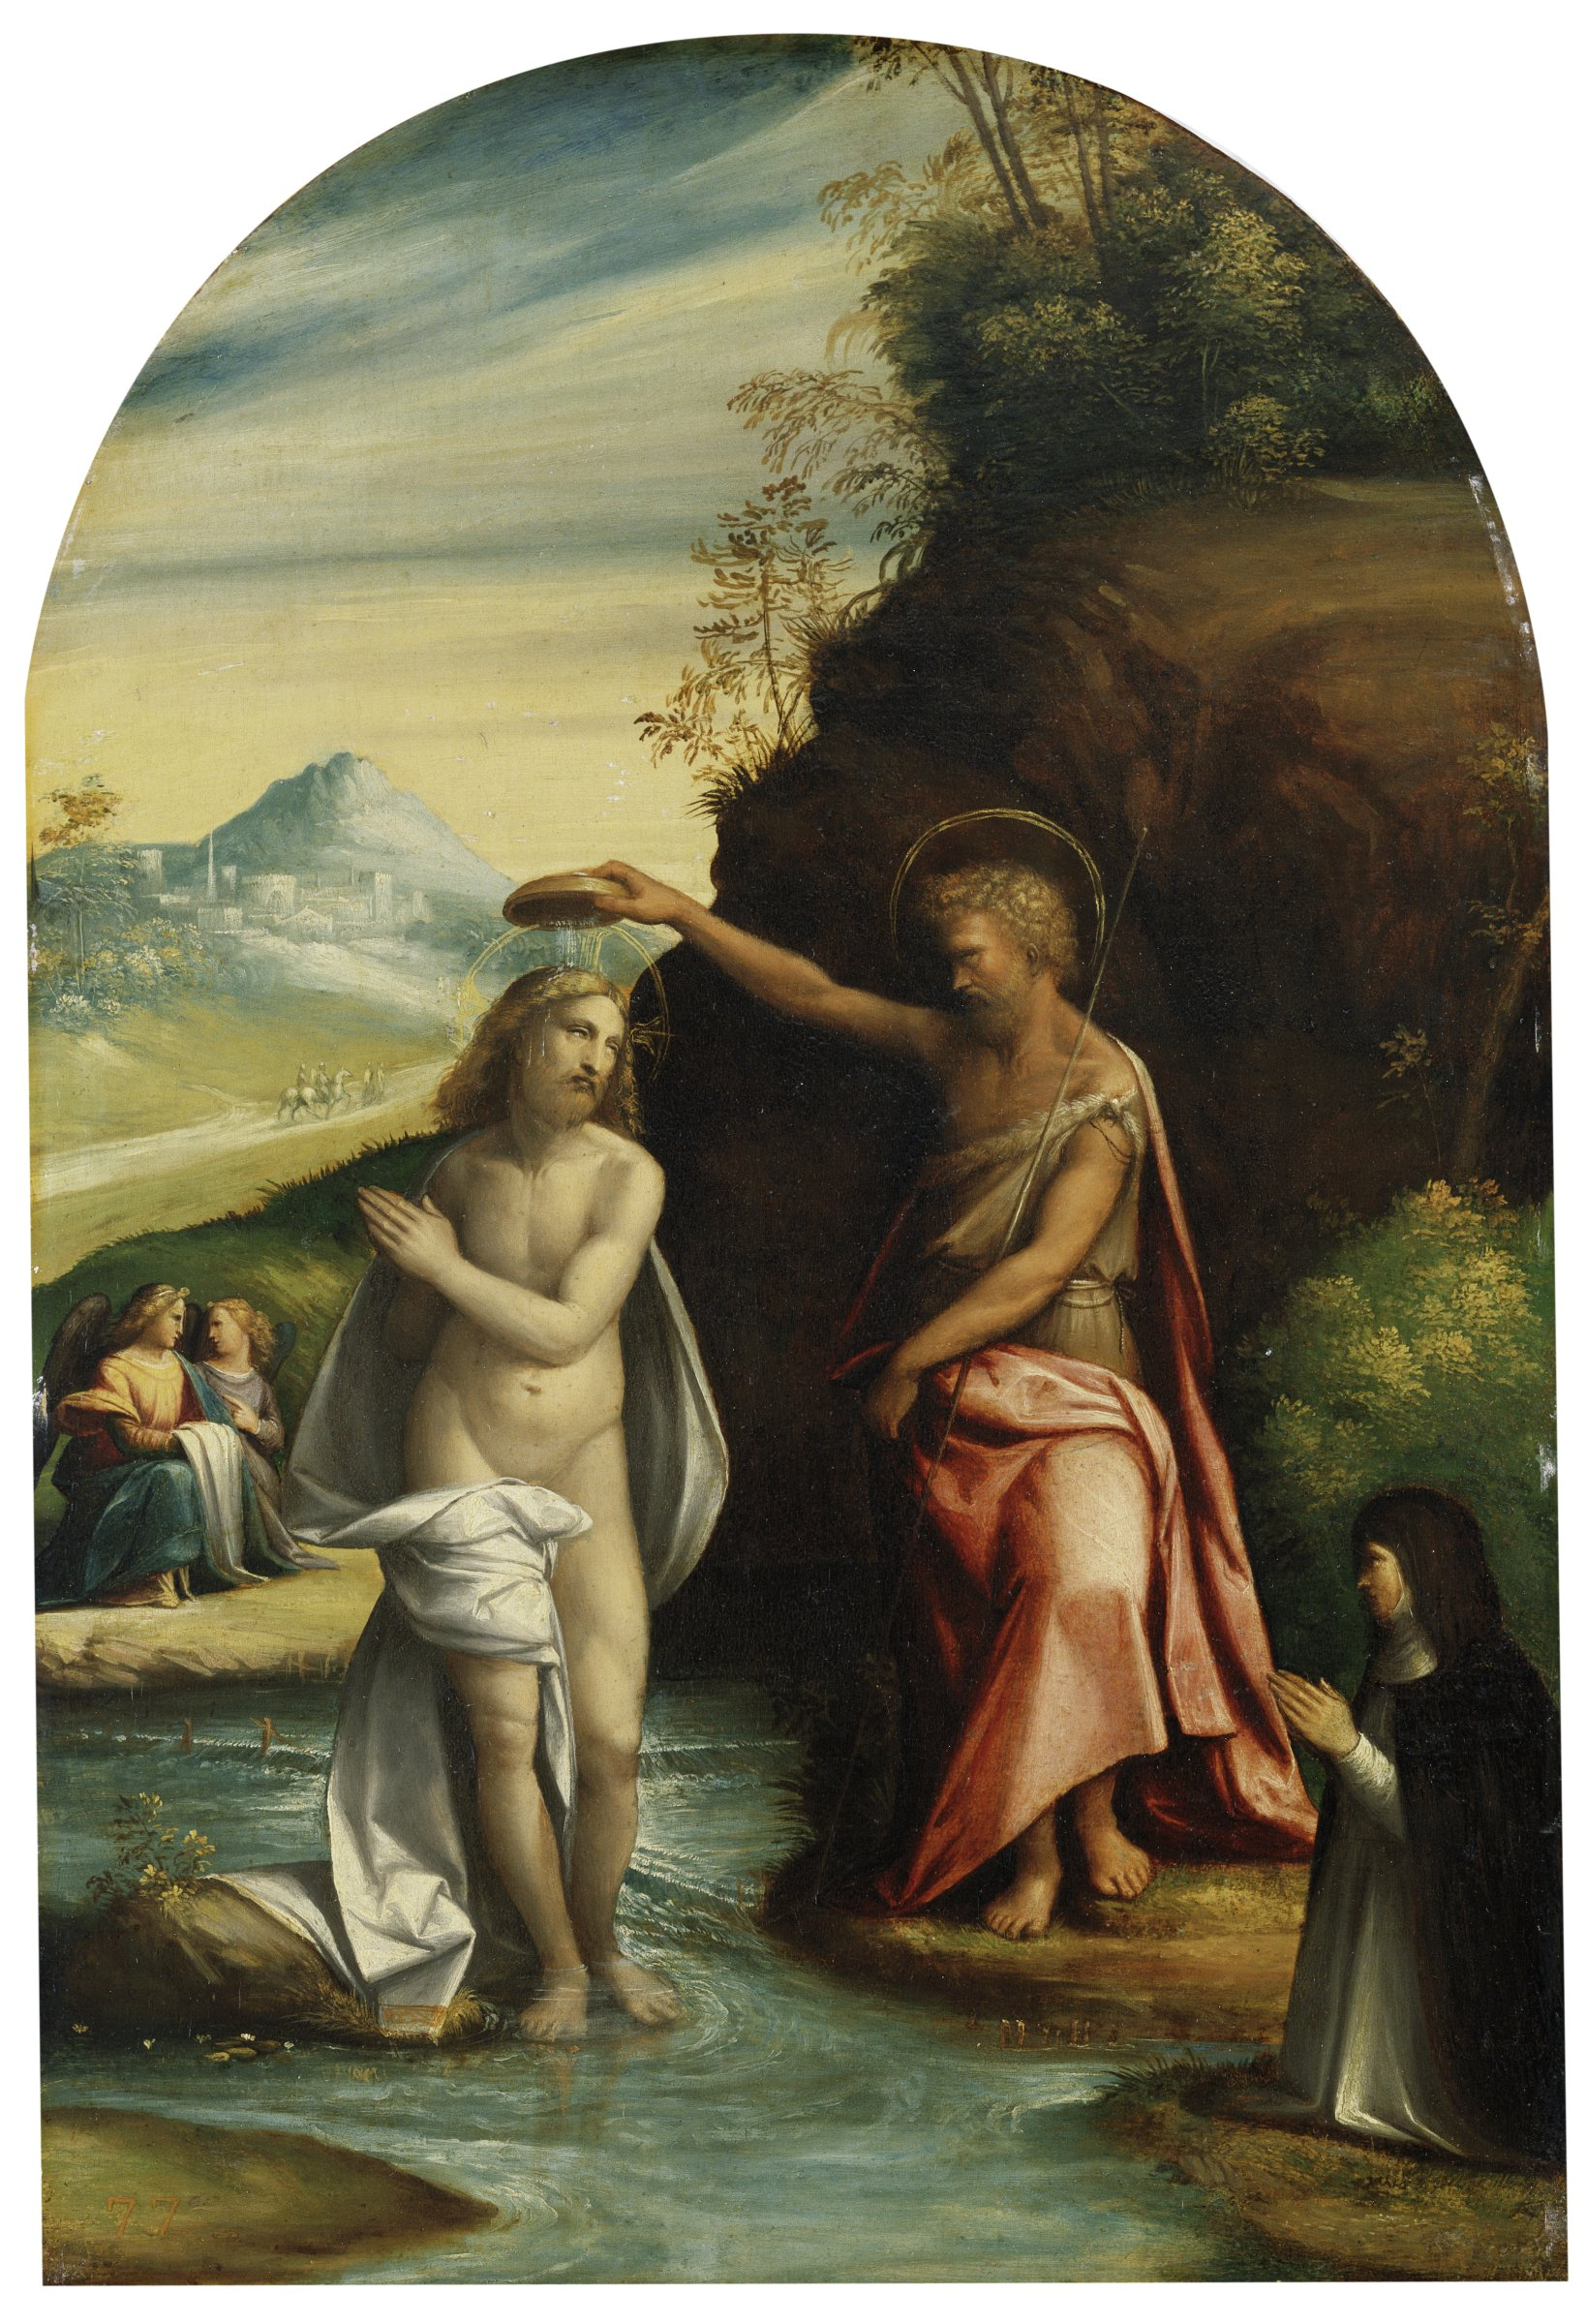 John the Baptist pours water from a bowl onto Christ who stands in a stream. A Dominican nun kneels in the foreground below John and two angels look on in the background.